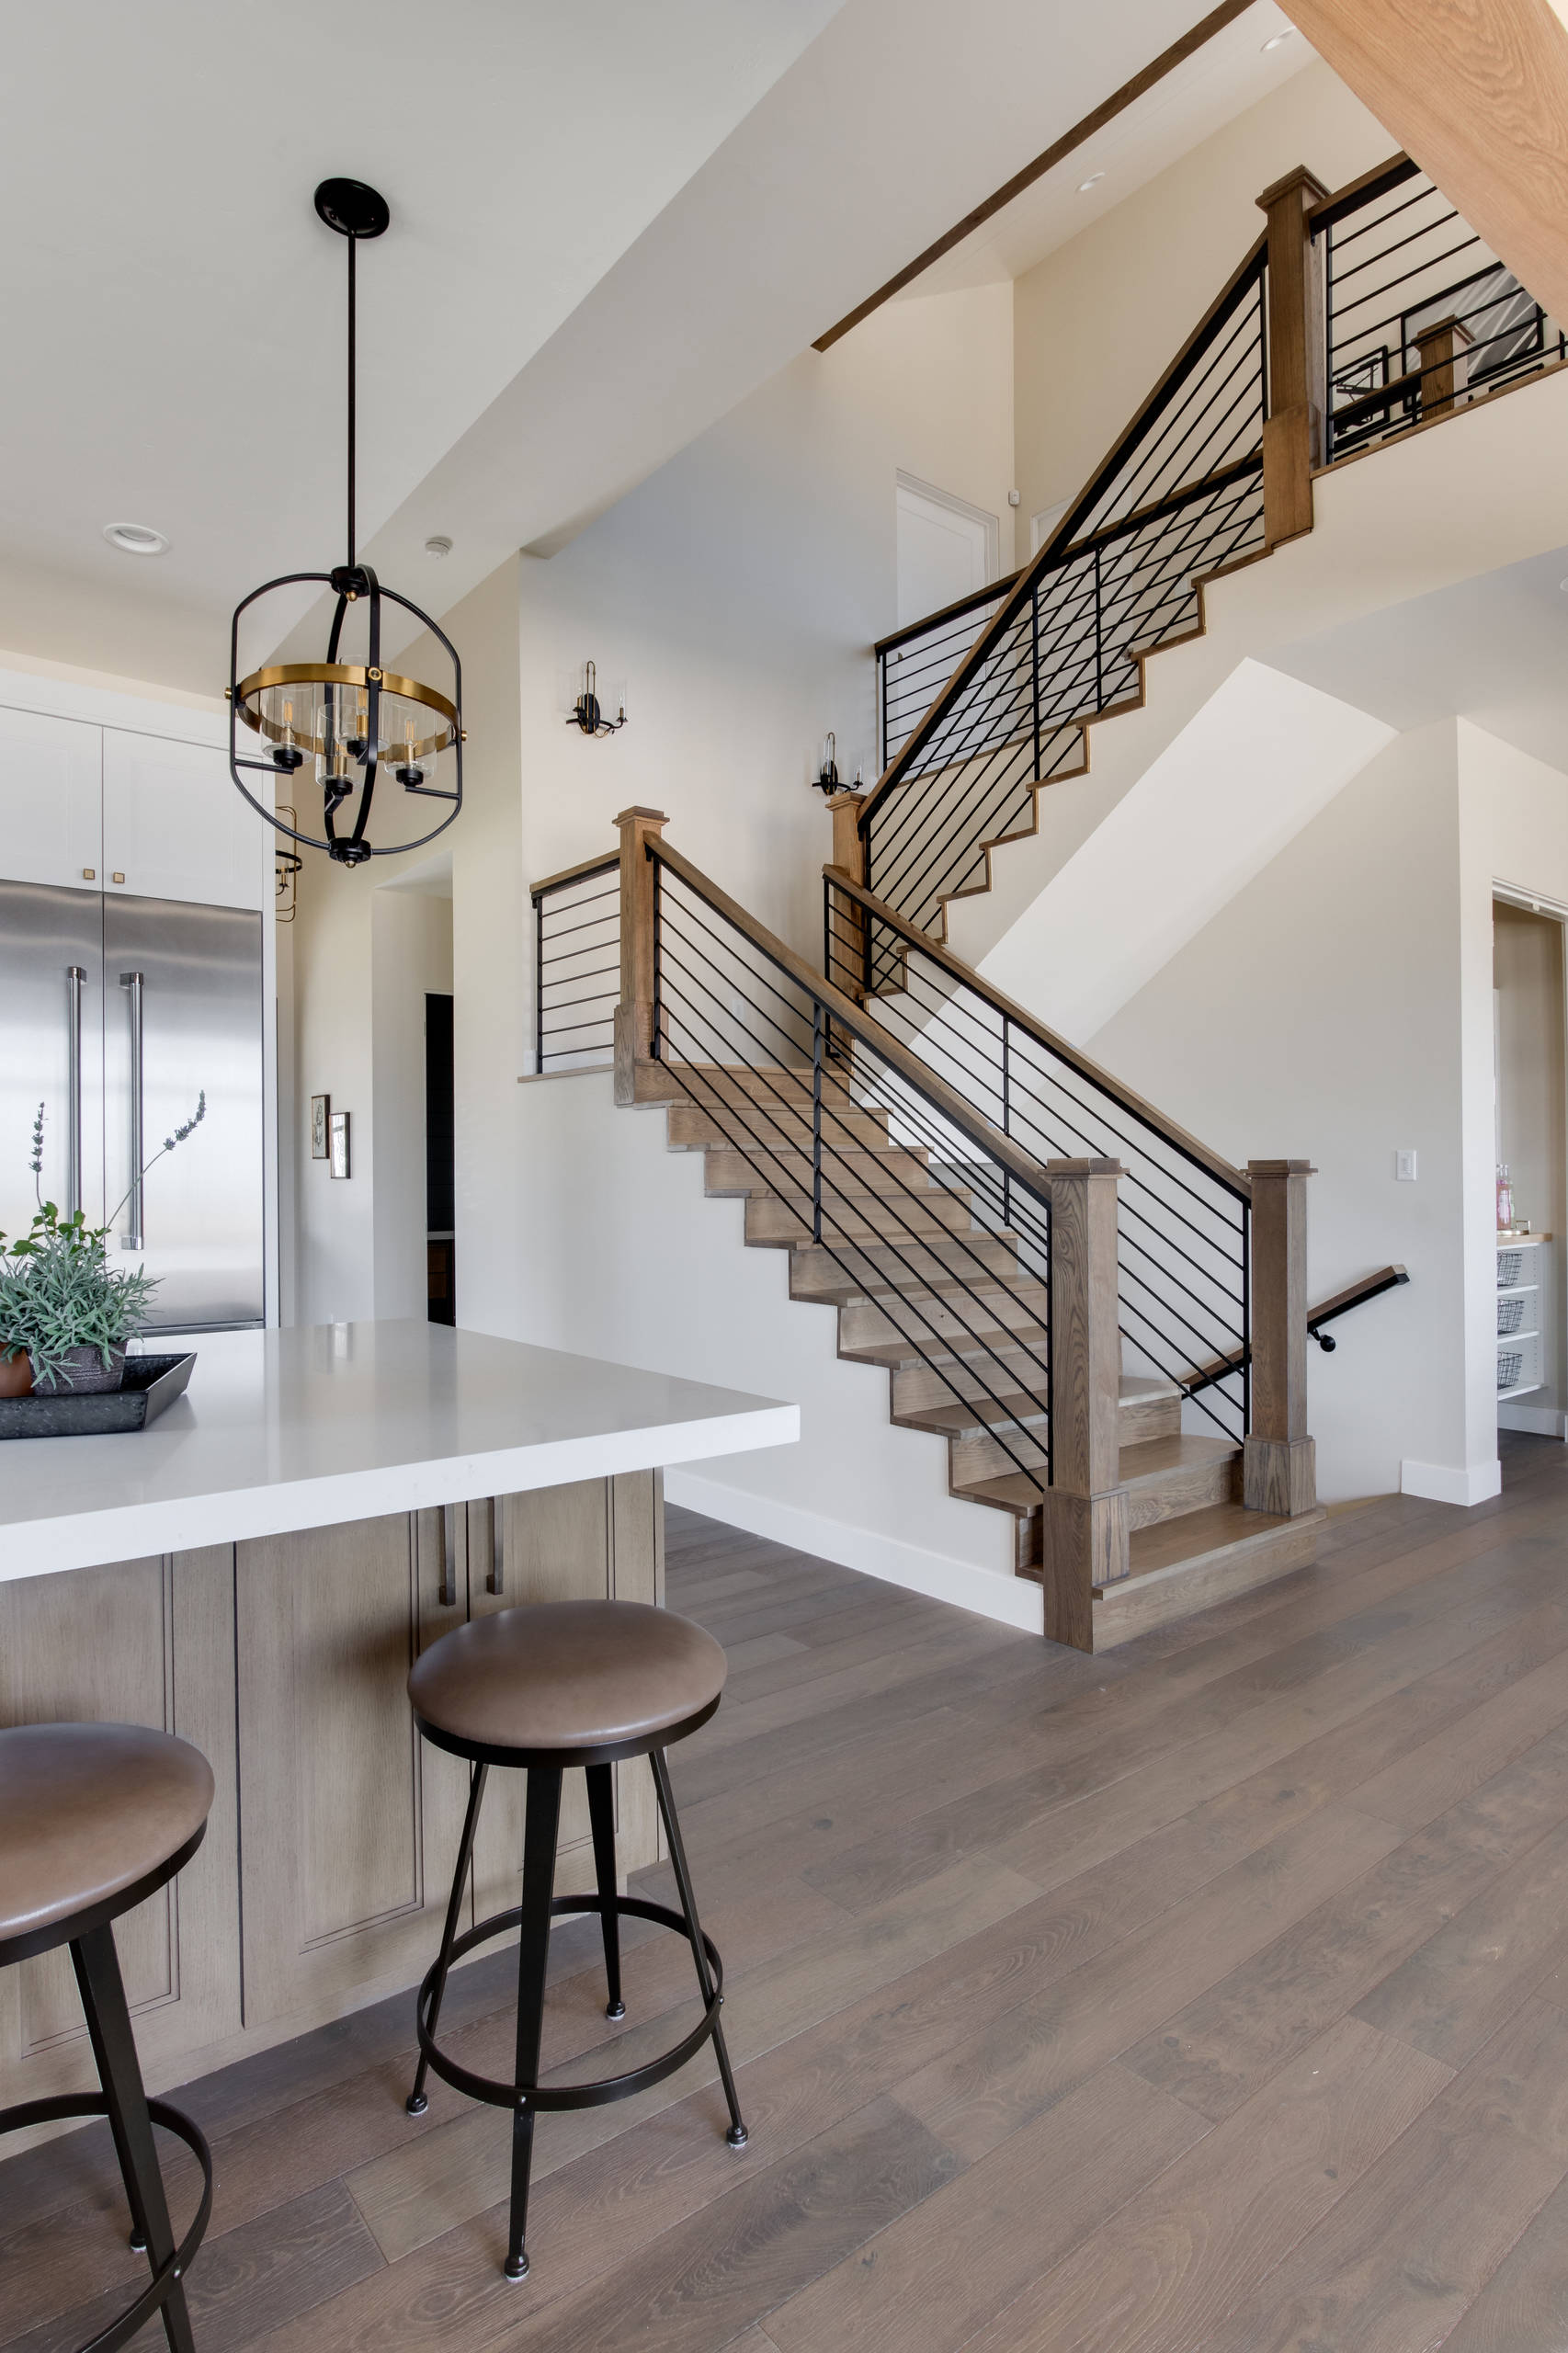 75 Beautiful Staircase Pictures Ideas May 2020 Houzz